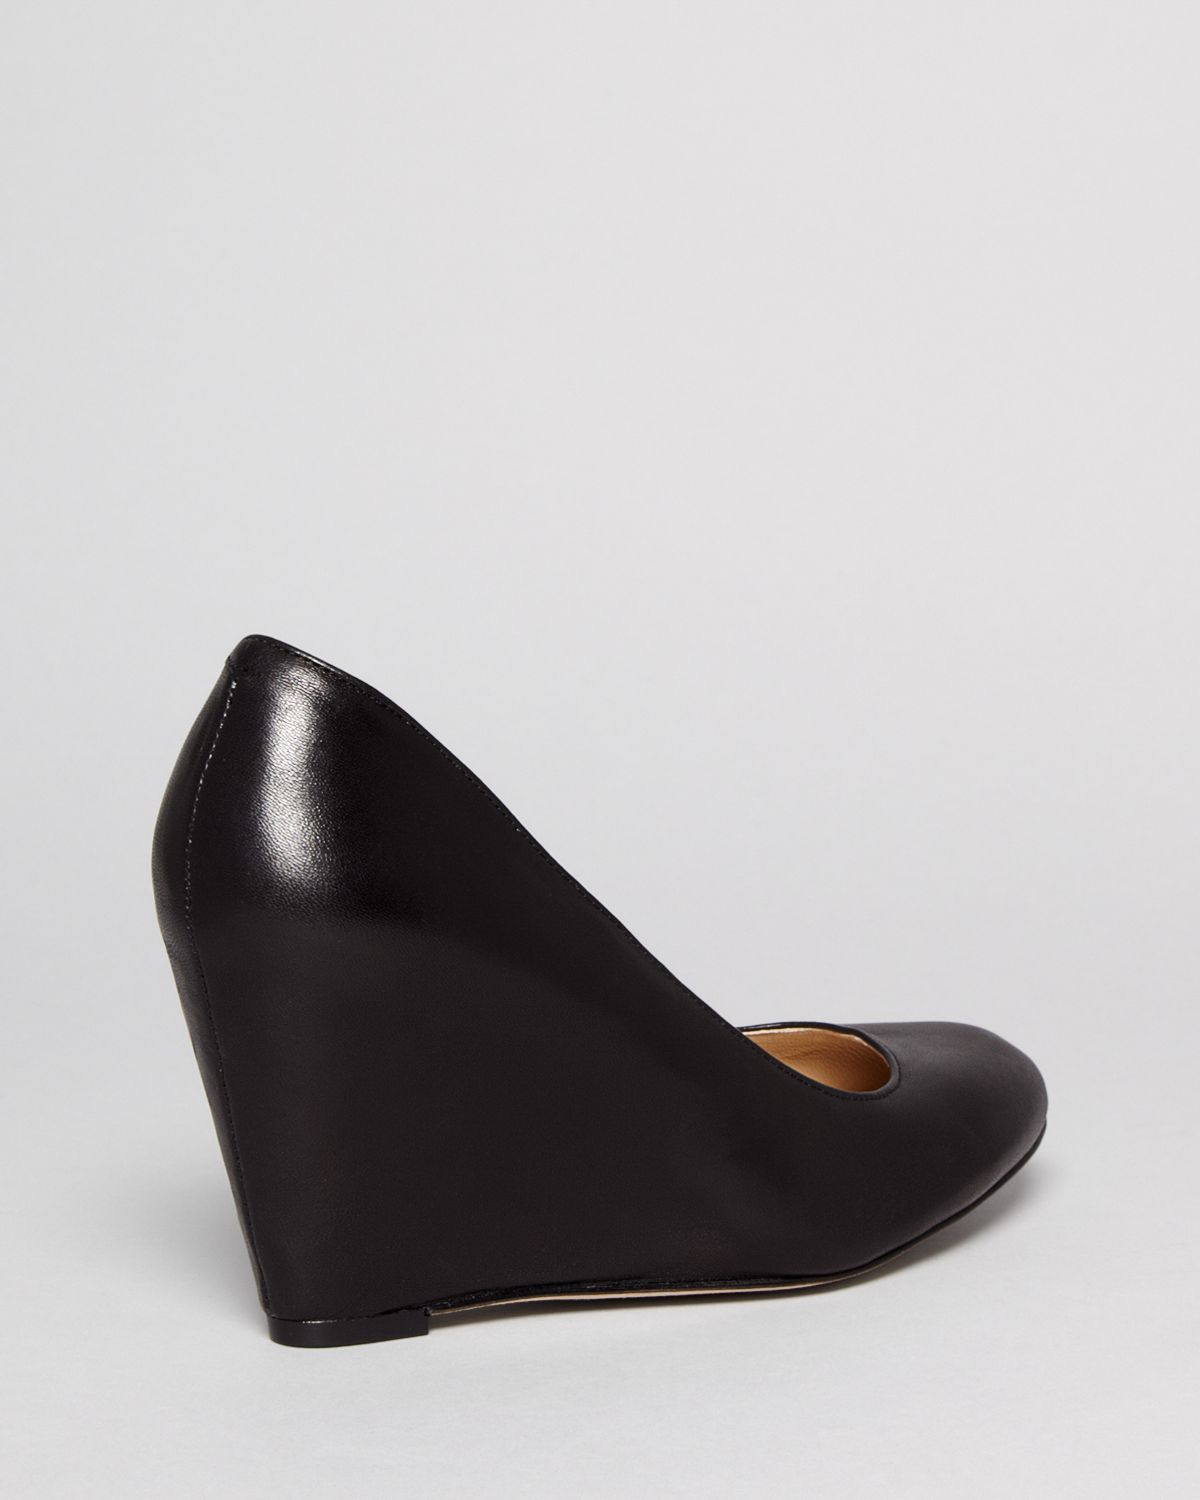 Via Spiga Pointed Toe Wedge Pumps Darby High Heel In